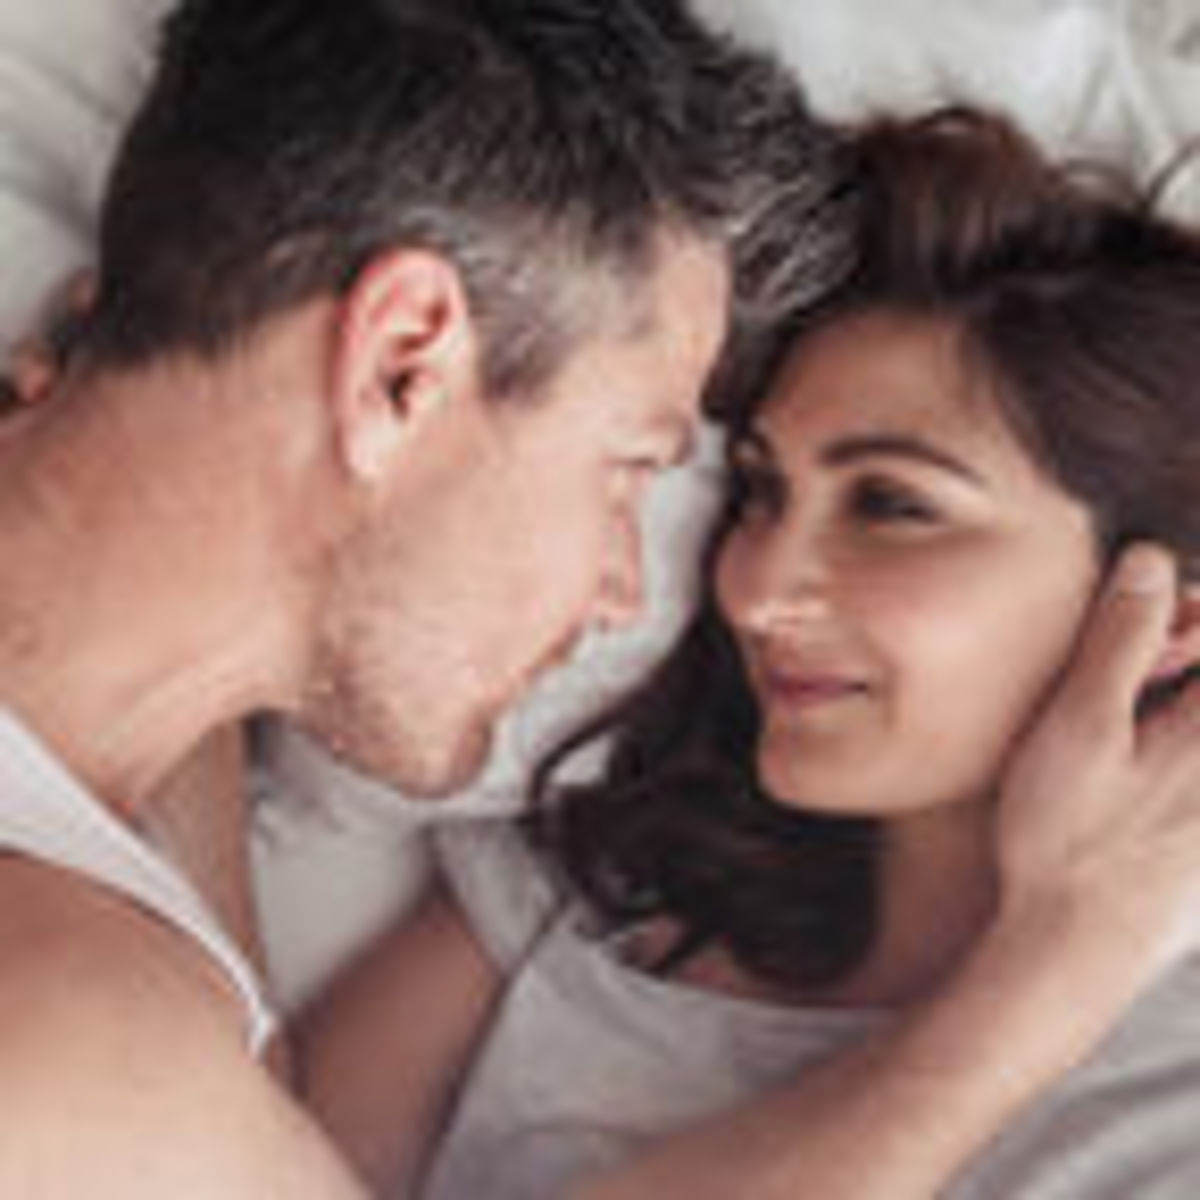 Real Reasons for Sex Before Marriage | Psychology Today